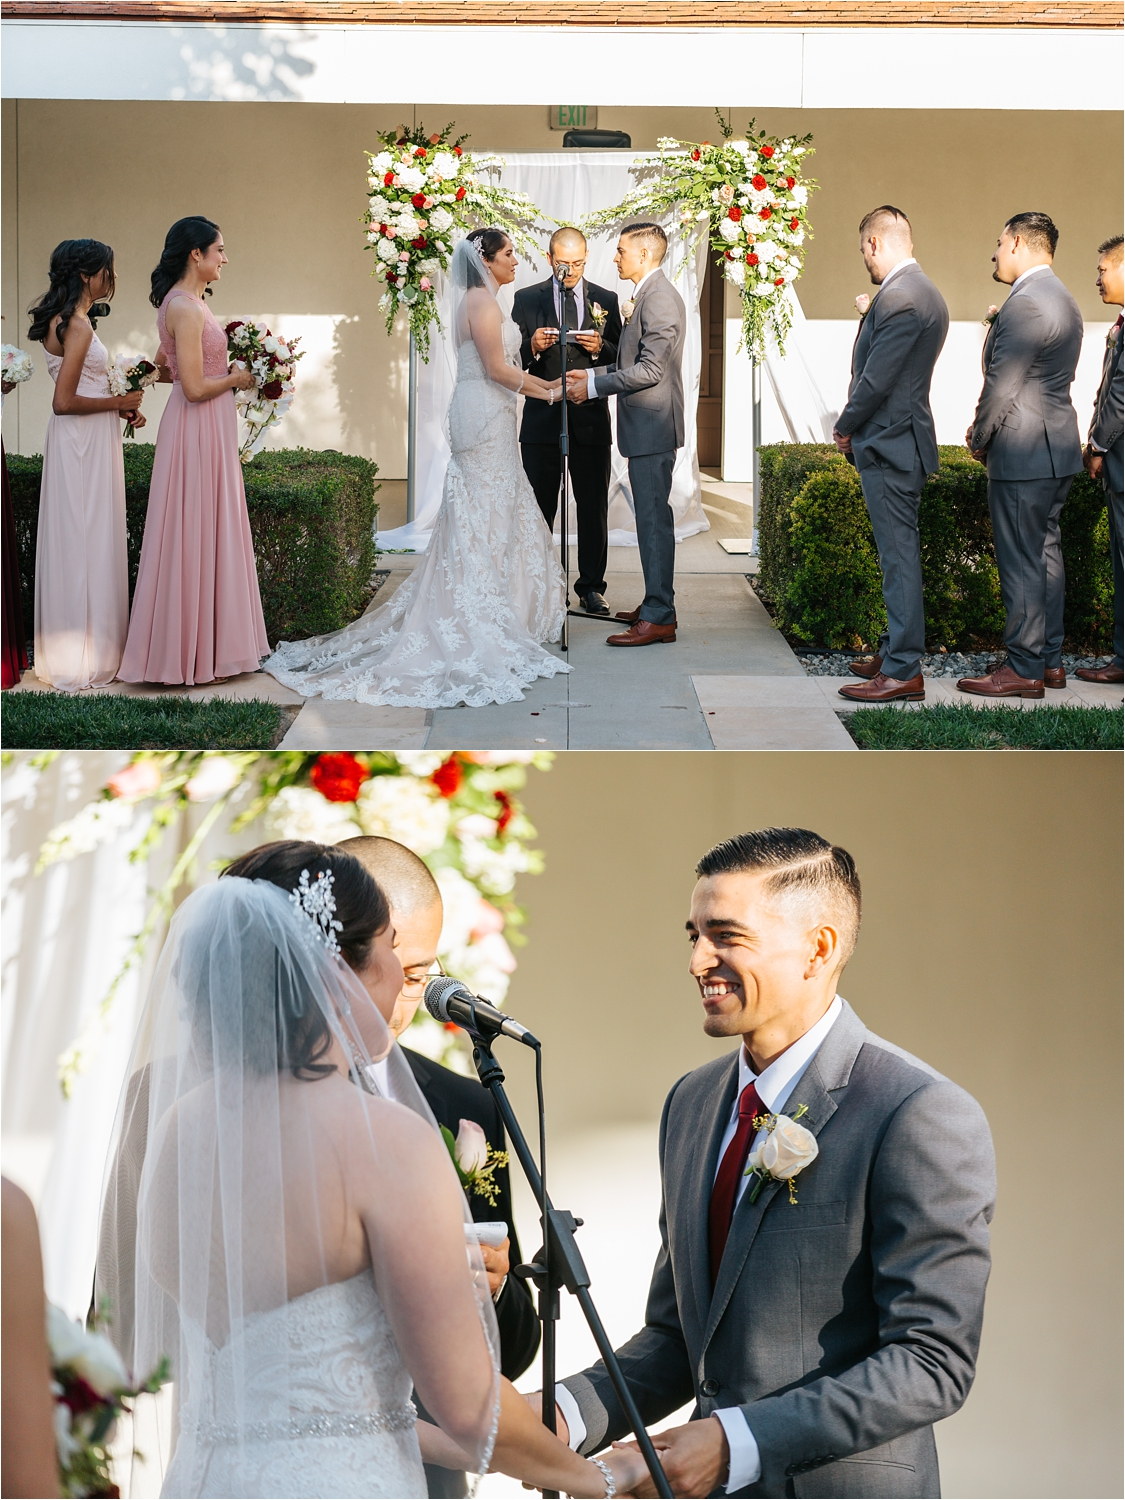 Bride and Groom saying vows - https://brittneyhannonphotography.com